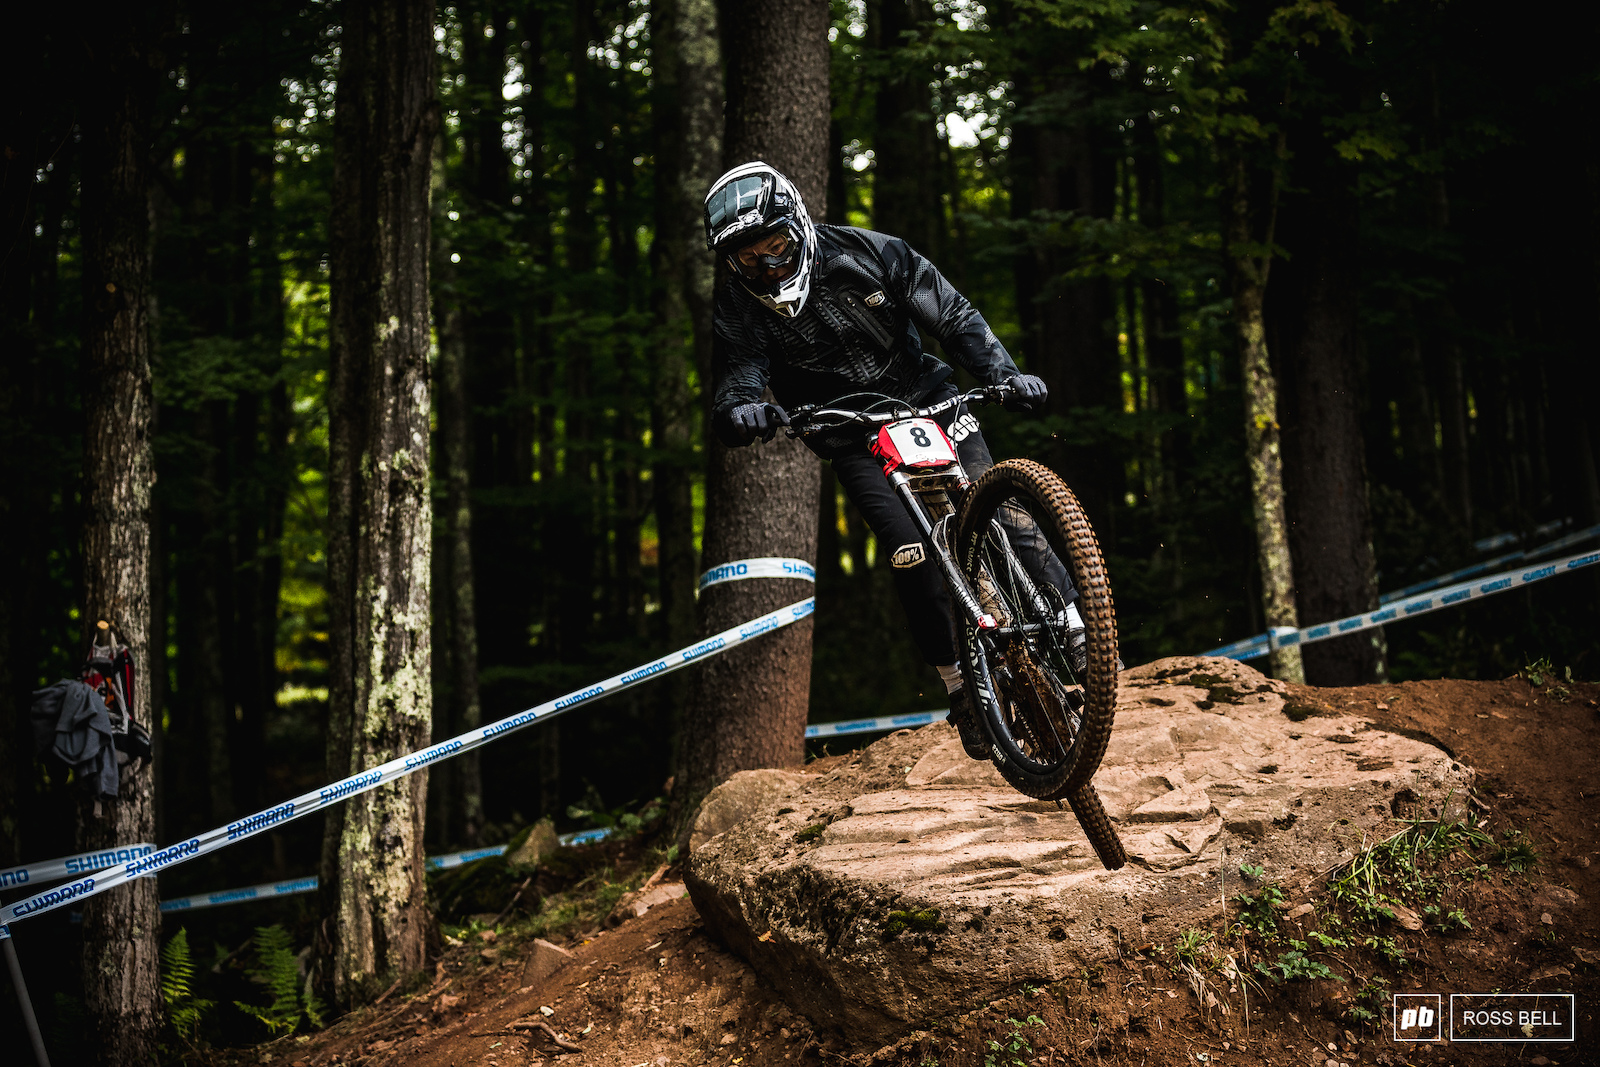 Janosch Klaus got his first podium in Lenzerheide and clearly wants more. He came down into 2nd place just 1 second back on Kye A Hern.